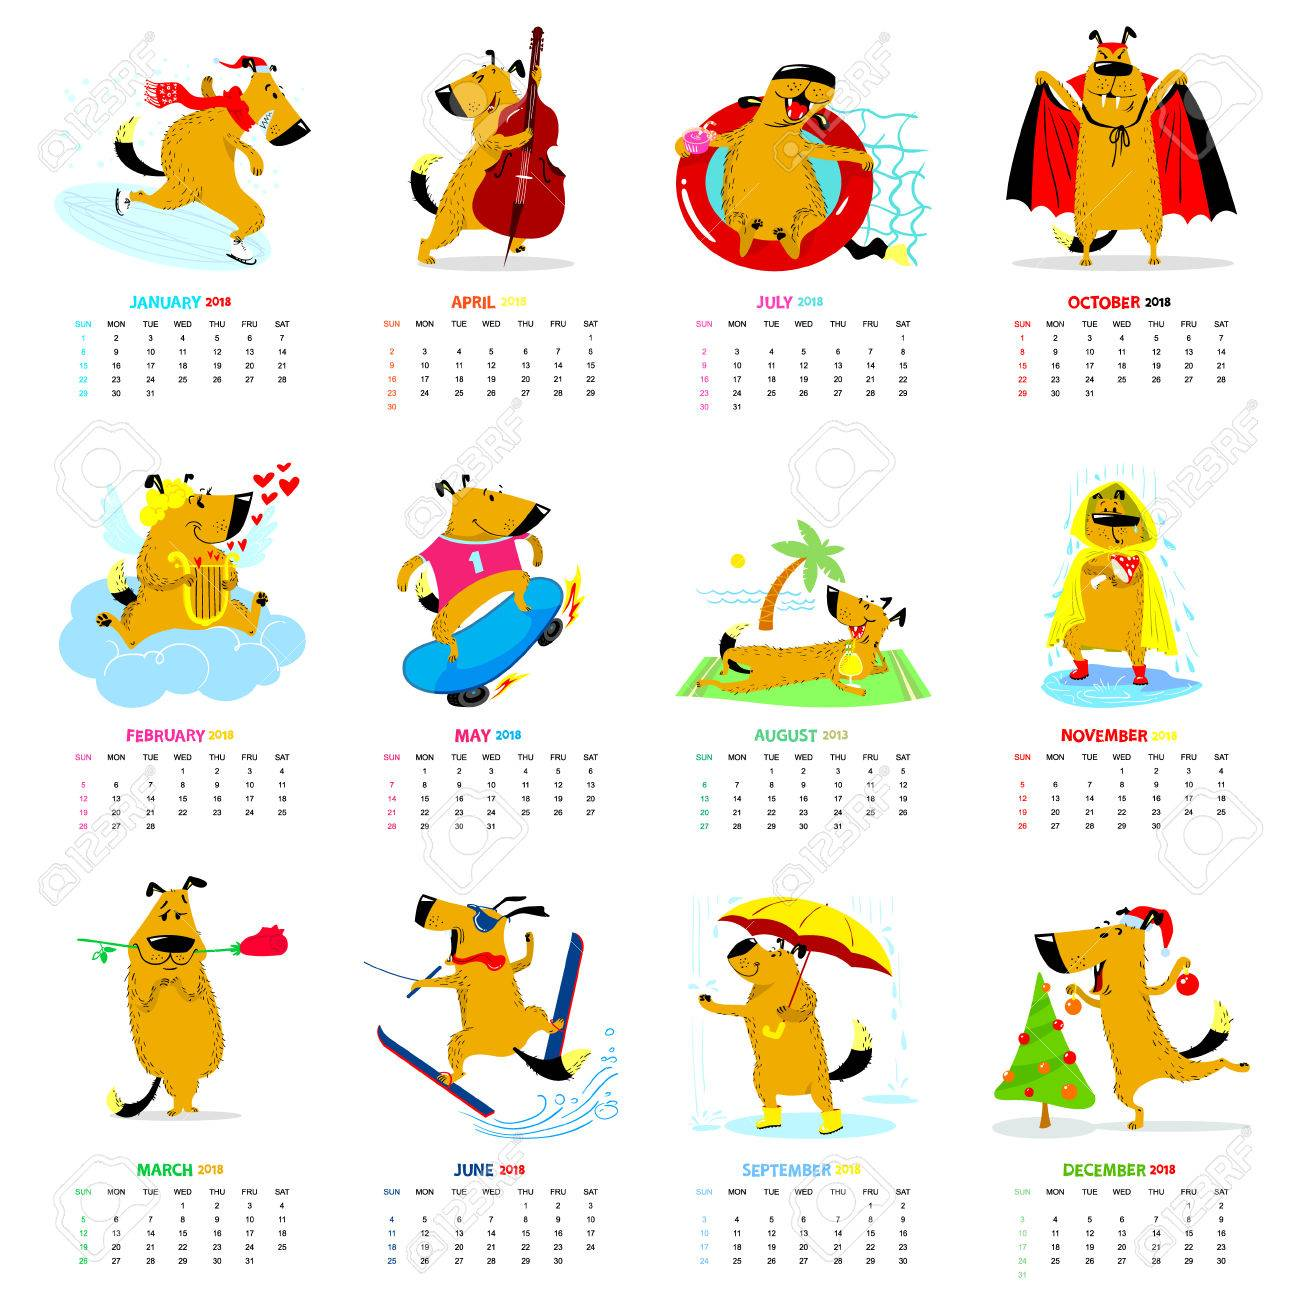 monthly calendar 2018 with cute dogs winter spring summer autumn seasons characters